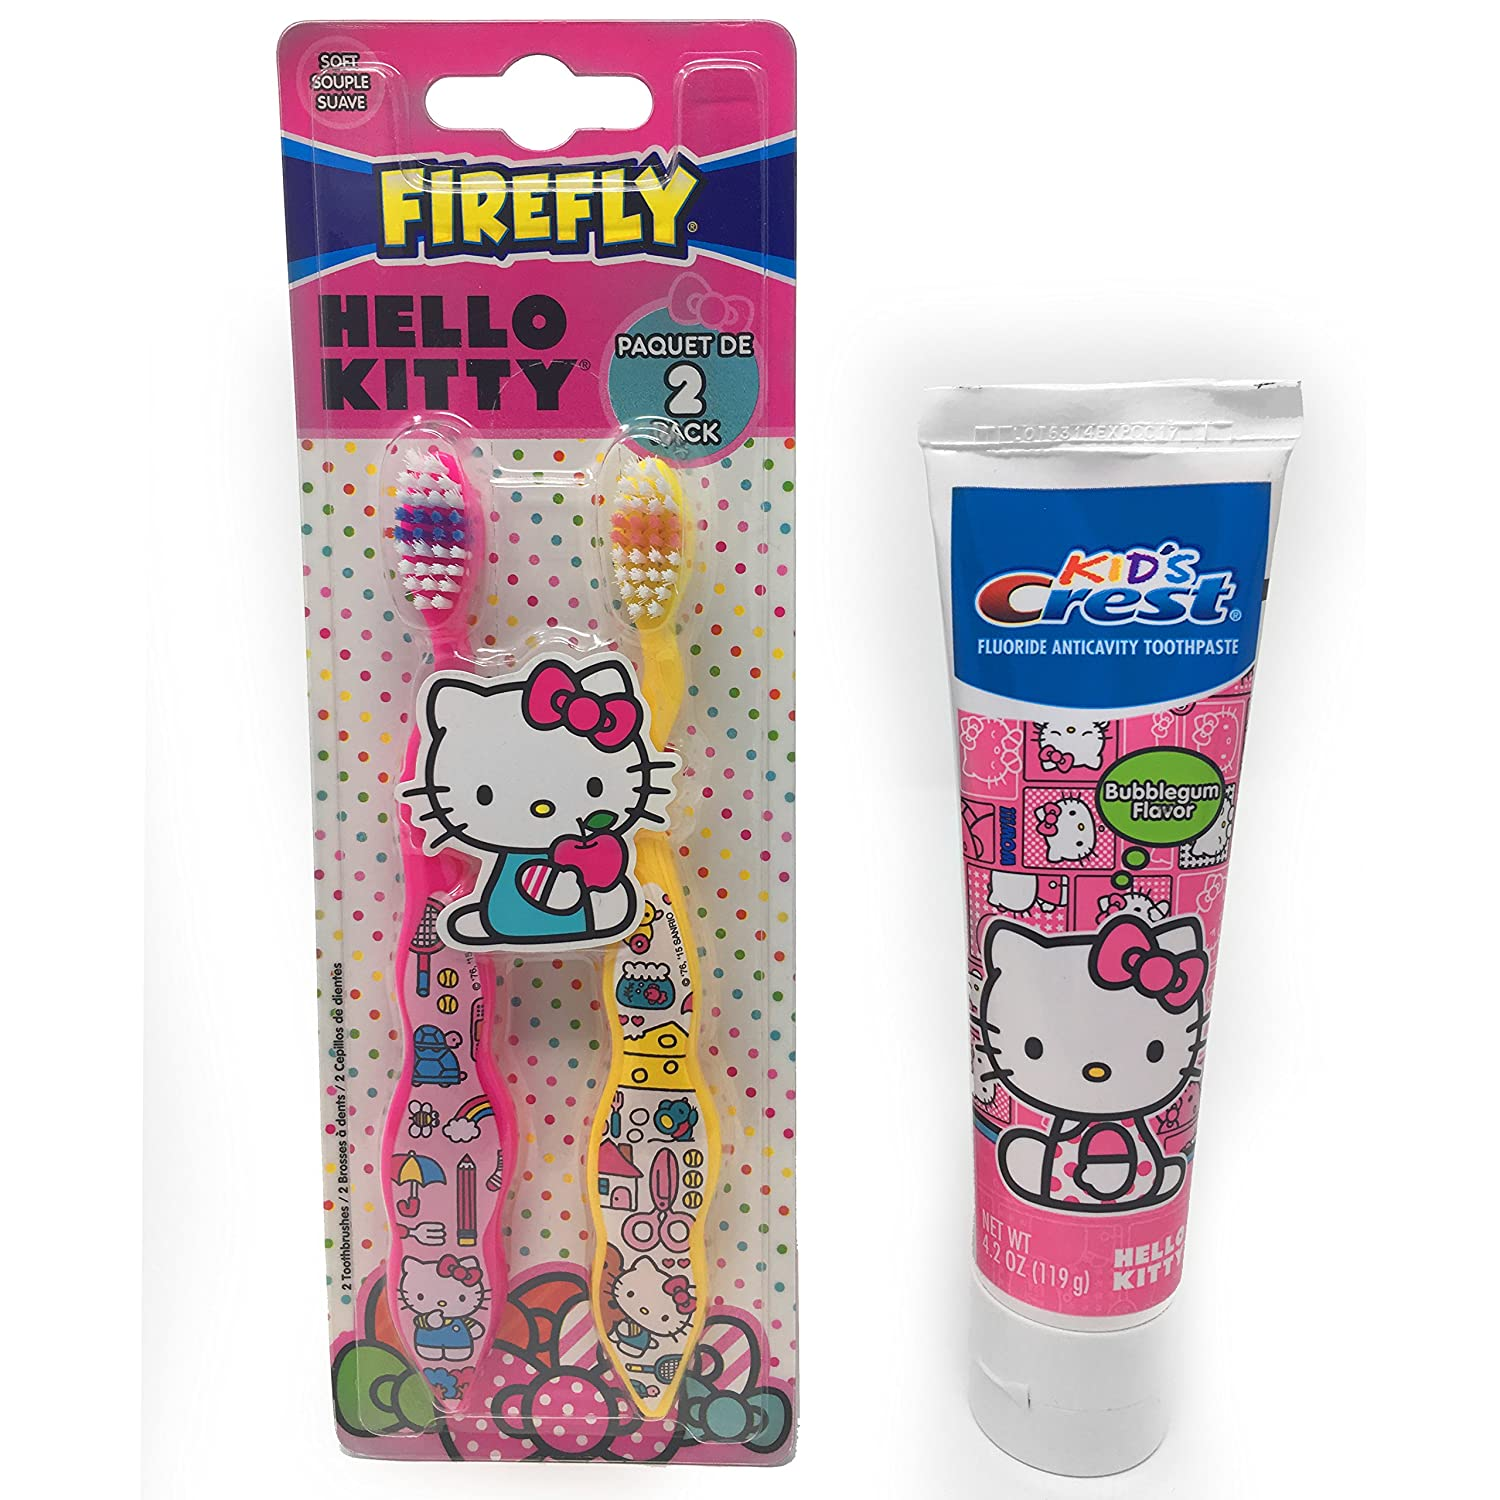 Amazon.com: Firefly Hello Kitty 2 Pack Soft Bristle Toothbrush Fun Child Safe and Crest Bubblegum Flavor Anti-cavity Flouride Healthy Toothpaste 4.2 oz ...